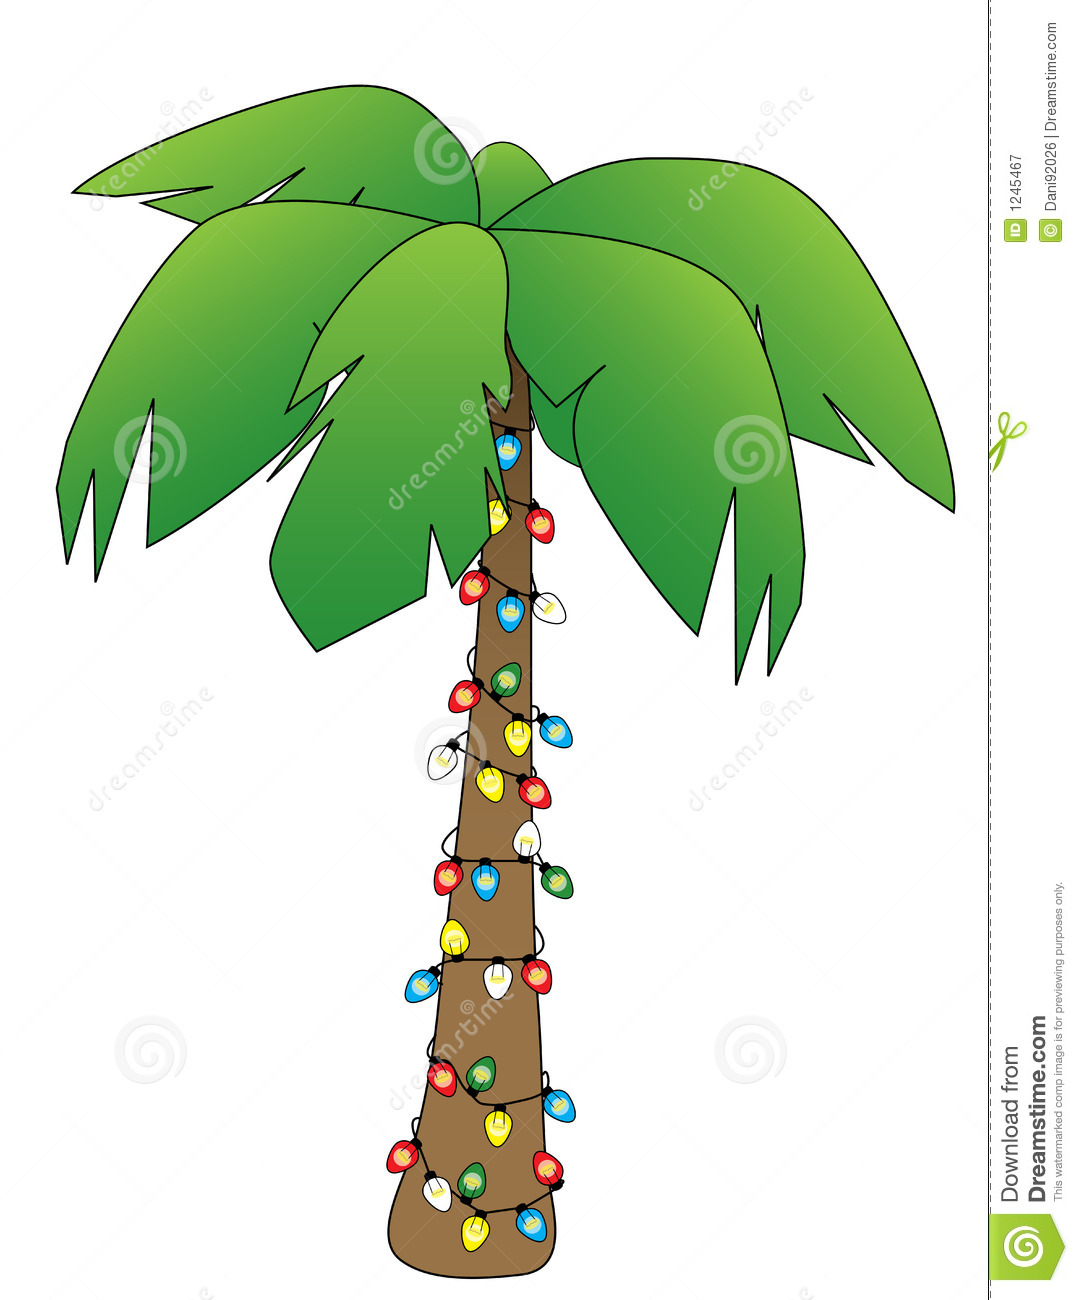 Palm tree christmas tree clipart banner library download Christmas Tree Lights Clipart | Free download best Christmas ... banner library download